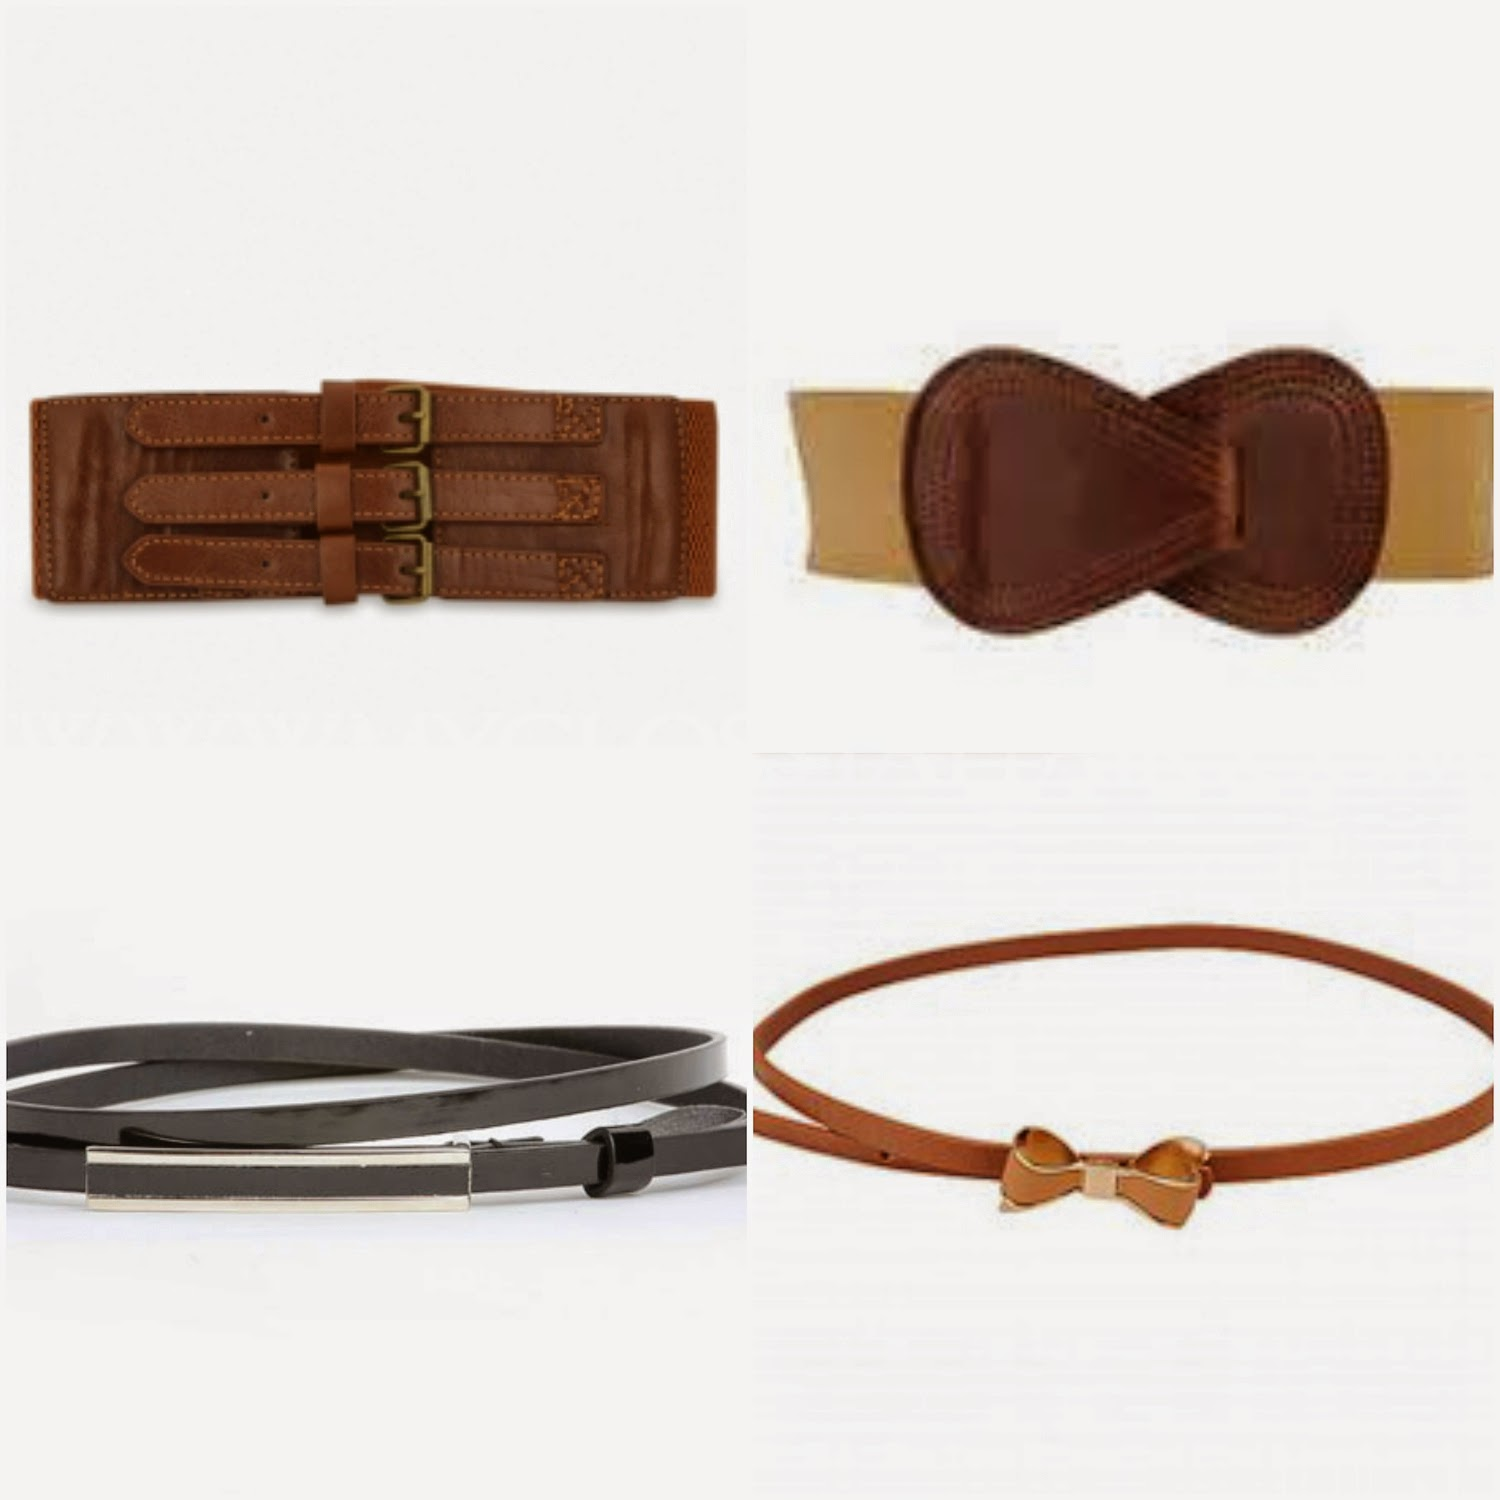 Belts for office